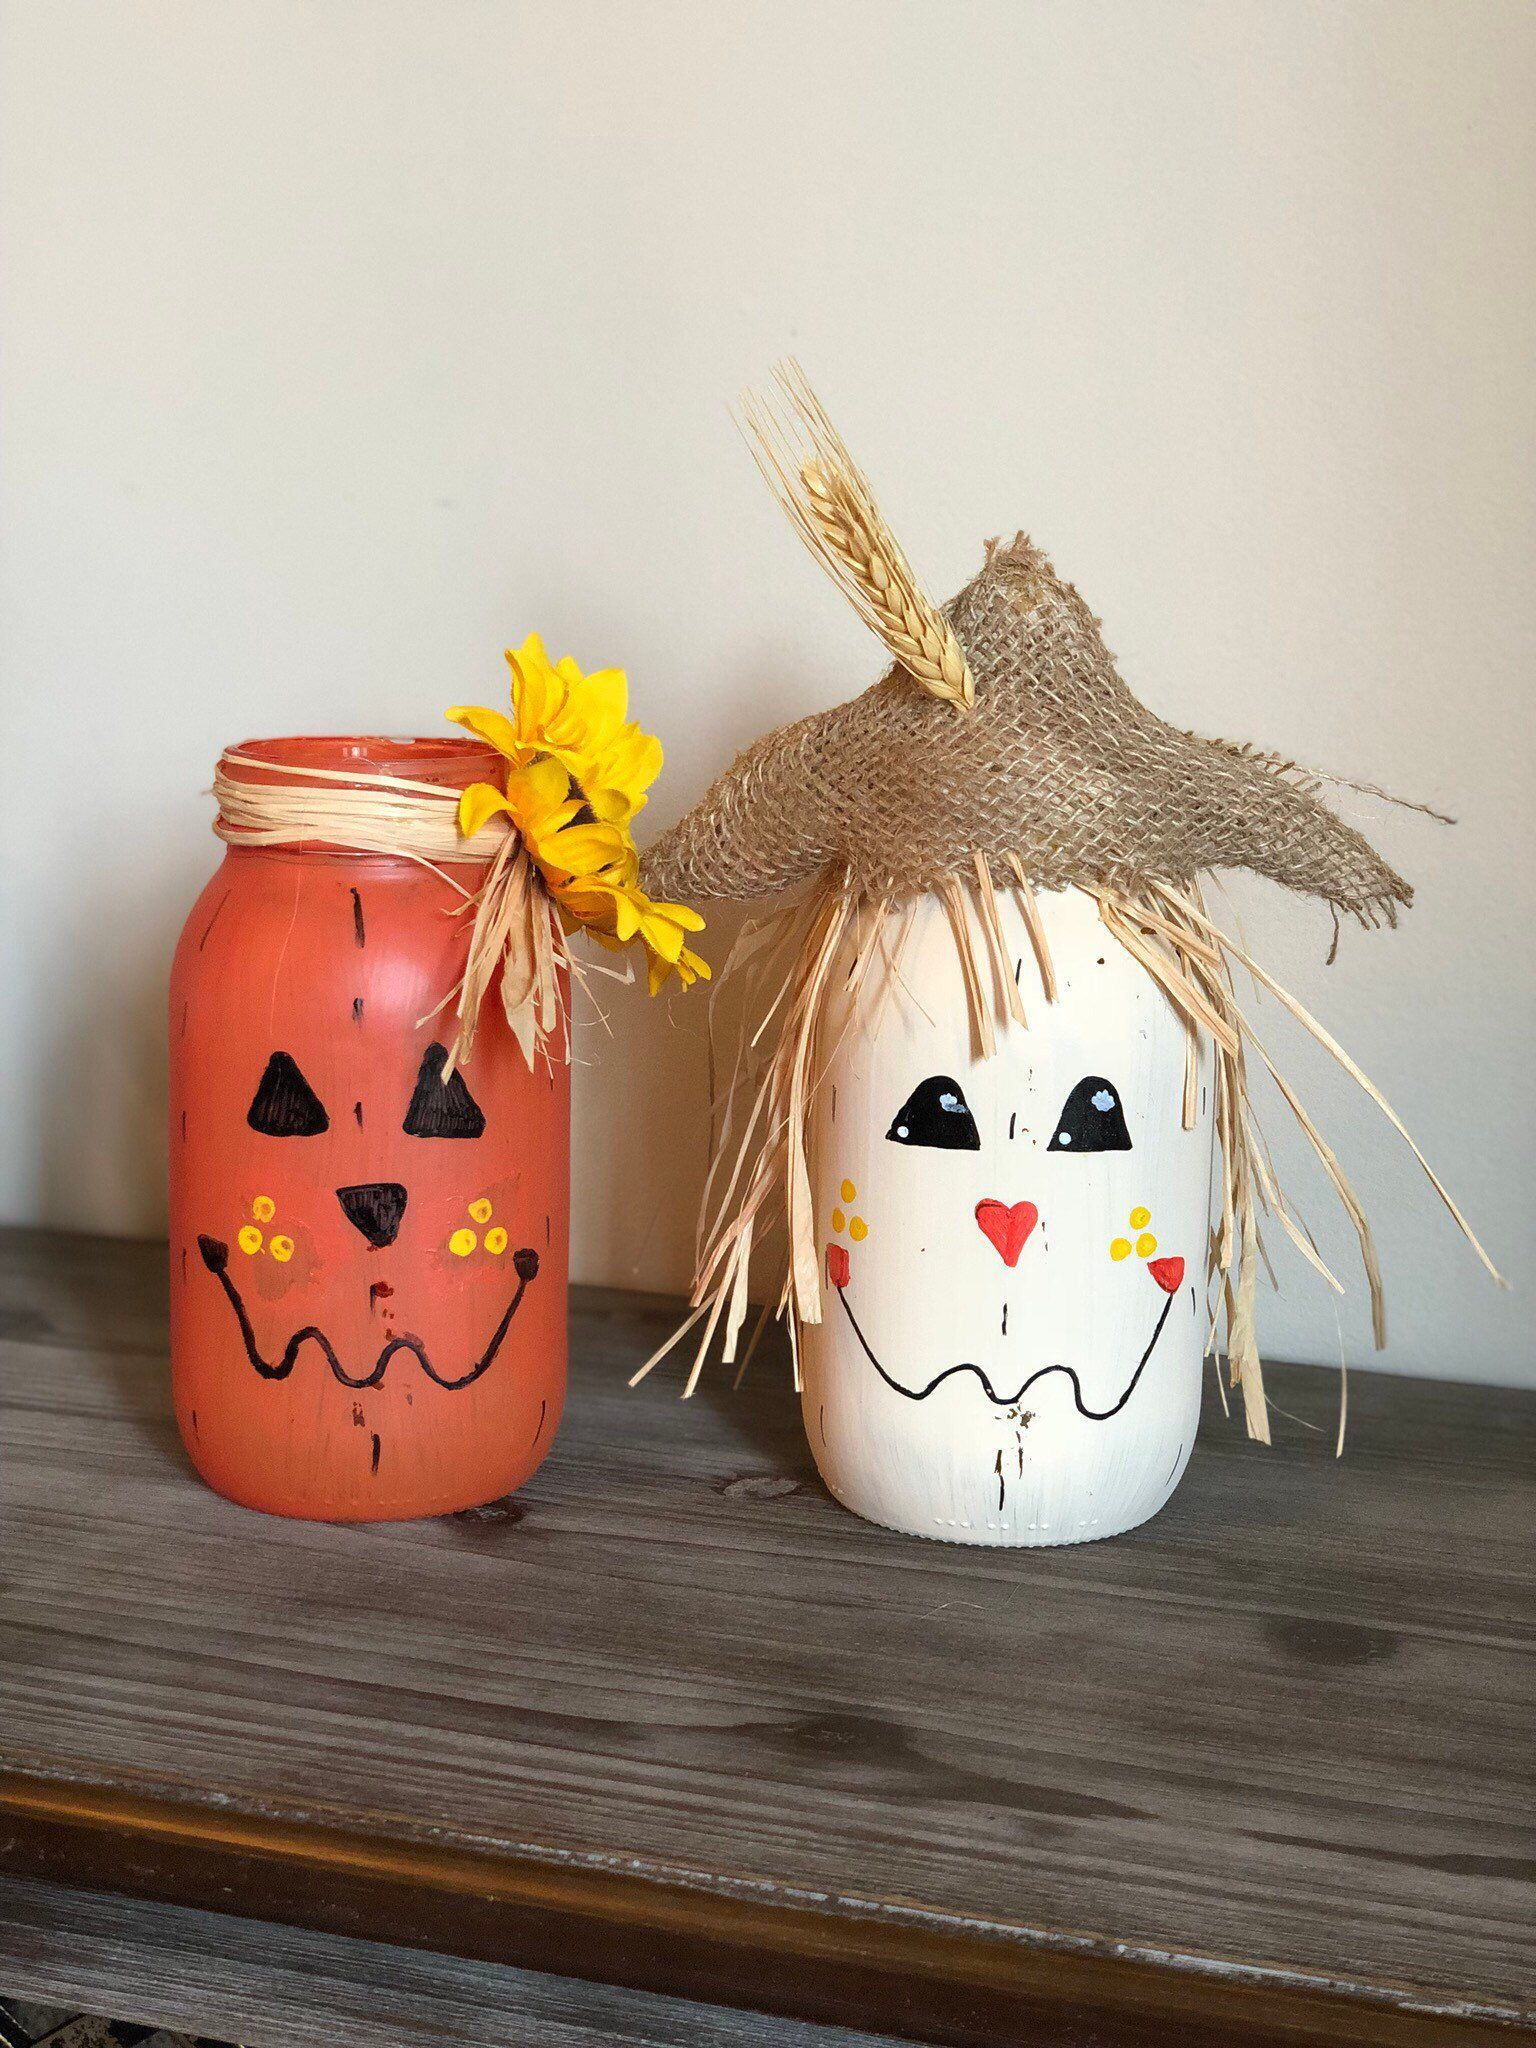 Fall decor, pumpkin decor, scarecrow decor, rustic, country, halloween, decorations, mason jar decor